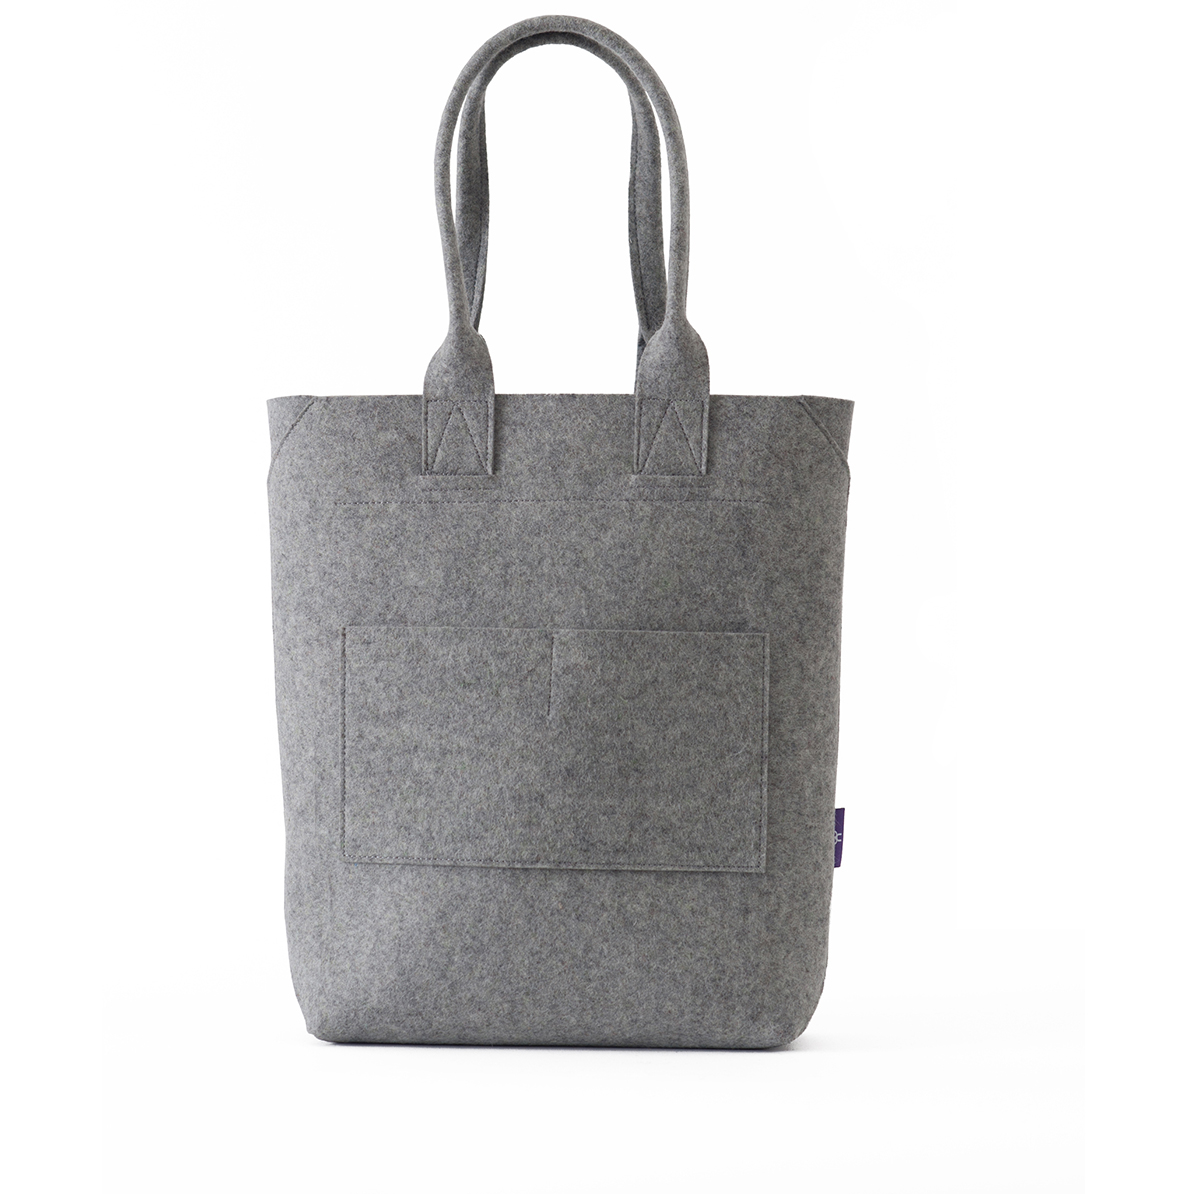 TOTE bag - felt - light grey